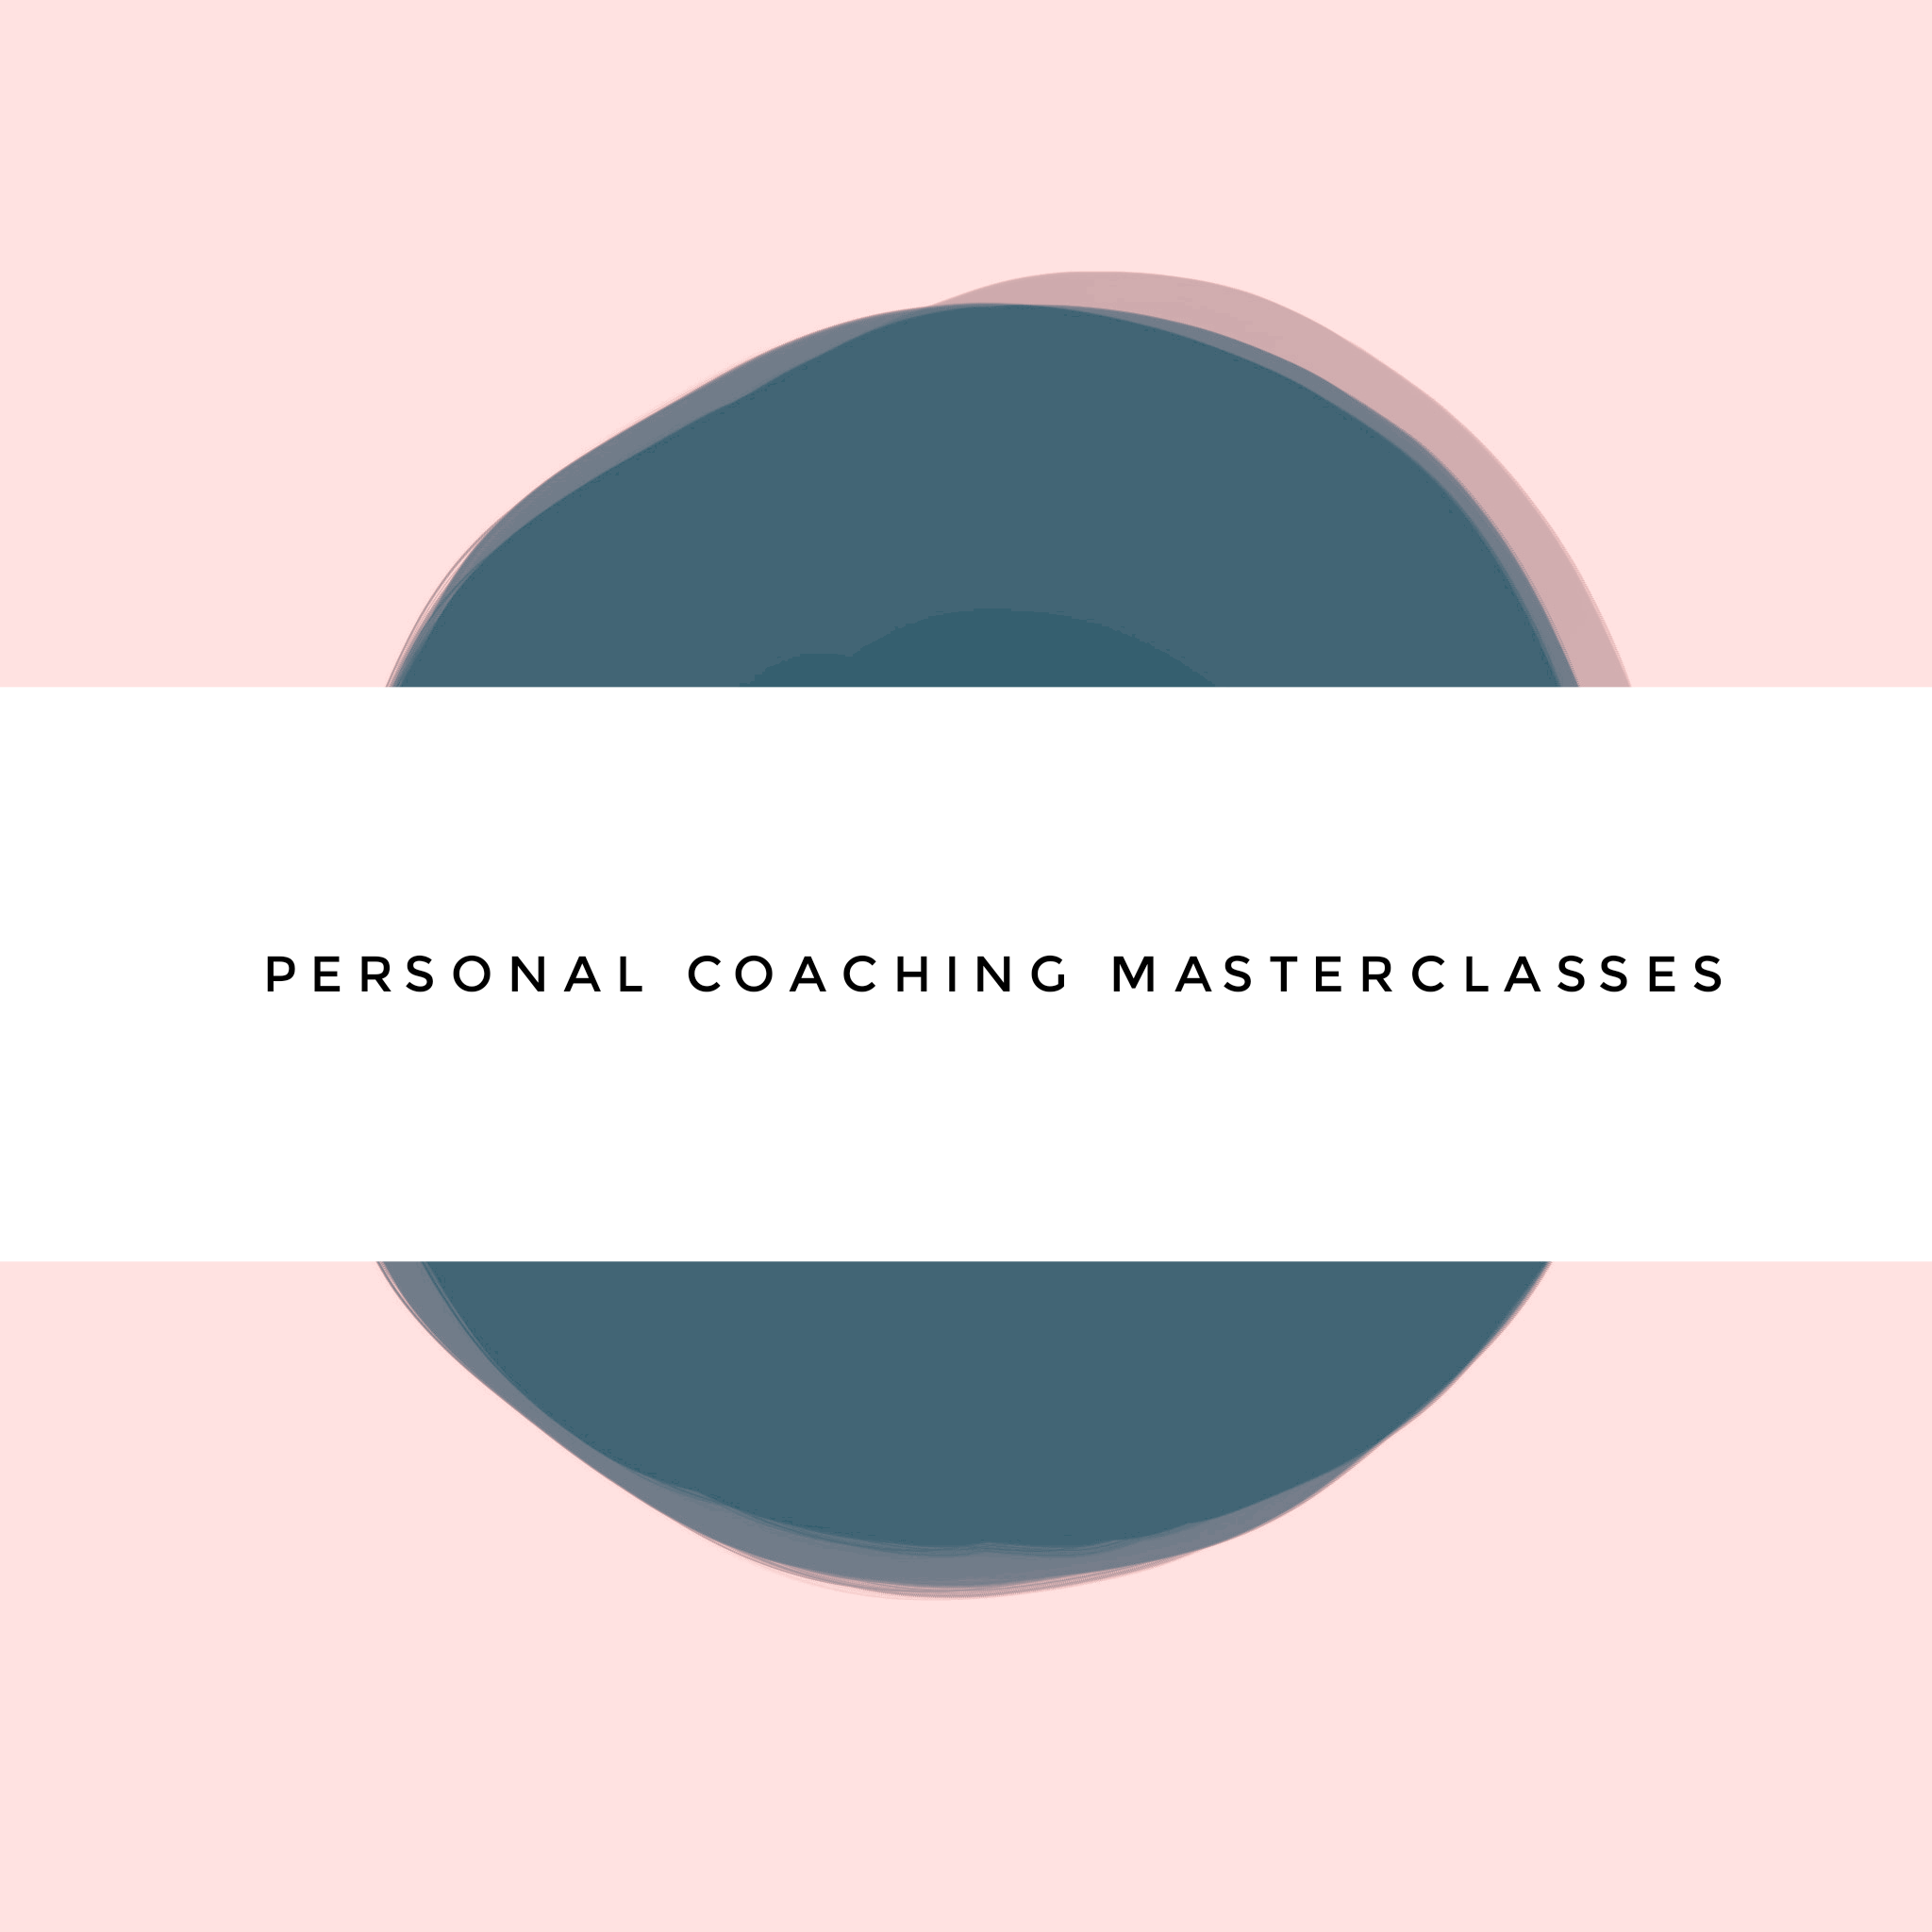 £35 per month /£400 per year - Join like-minded women in monthly group coaching masterclasses to discuss, develop and apply strategies for personal development.